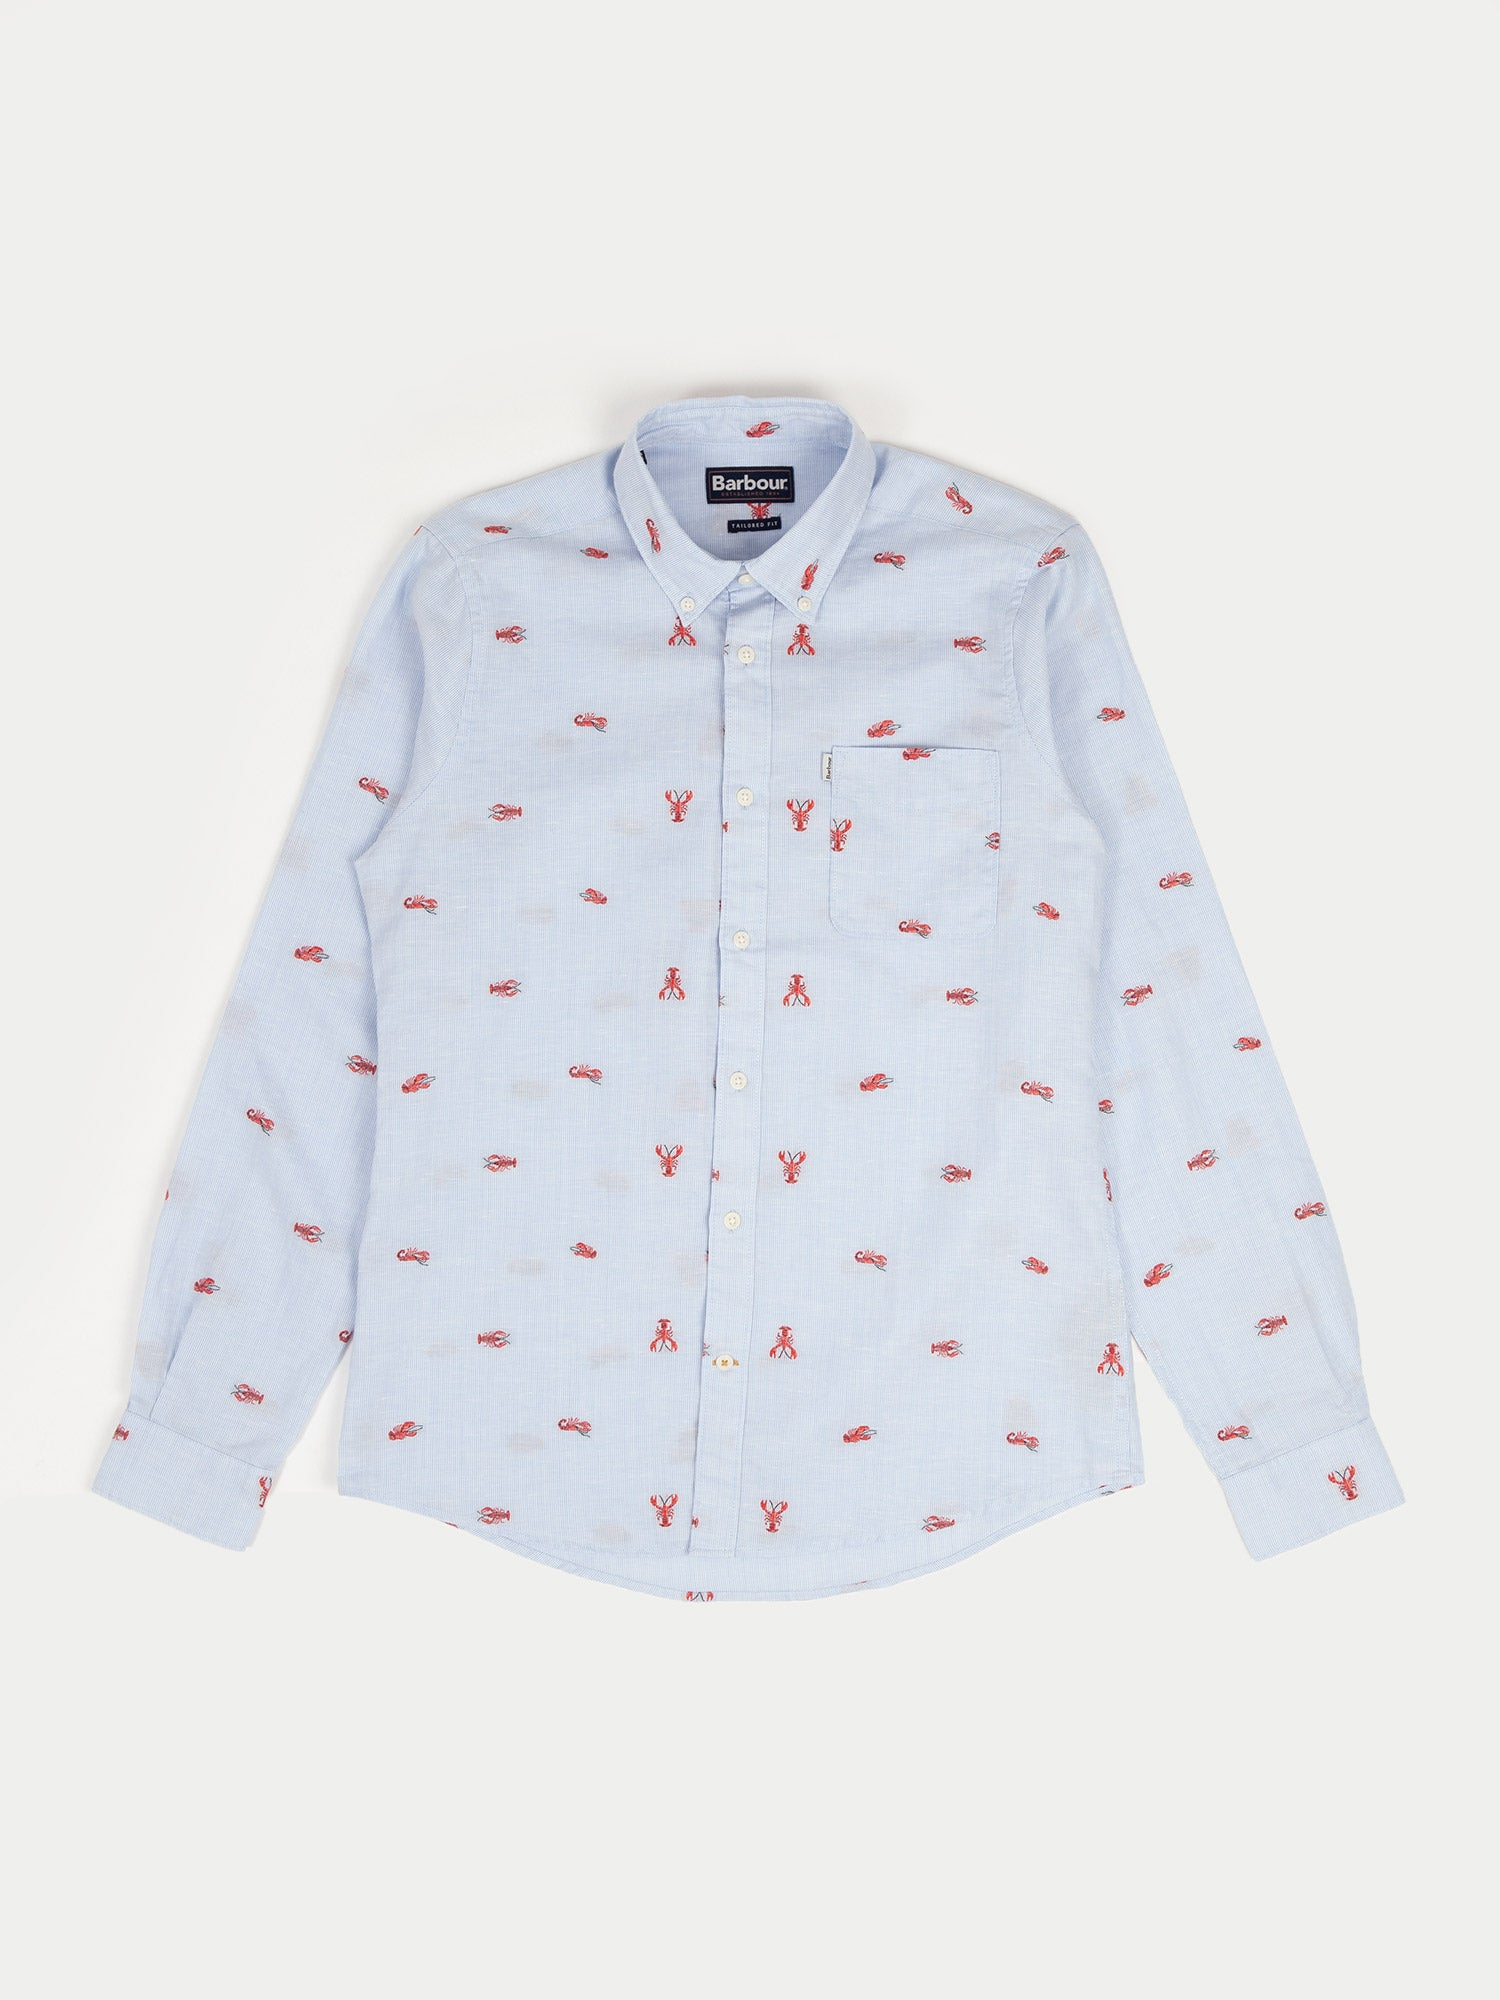 Barbour Lobster Shirt (Blue)